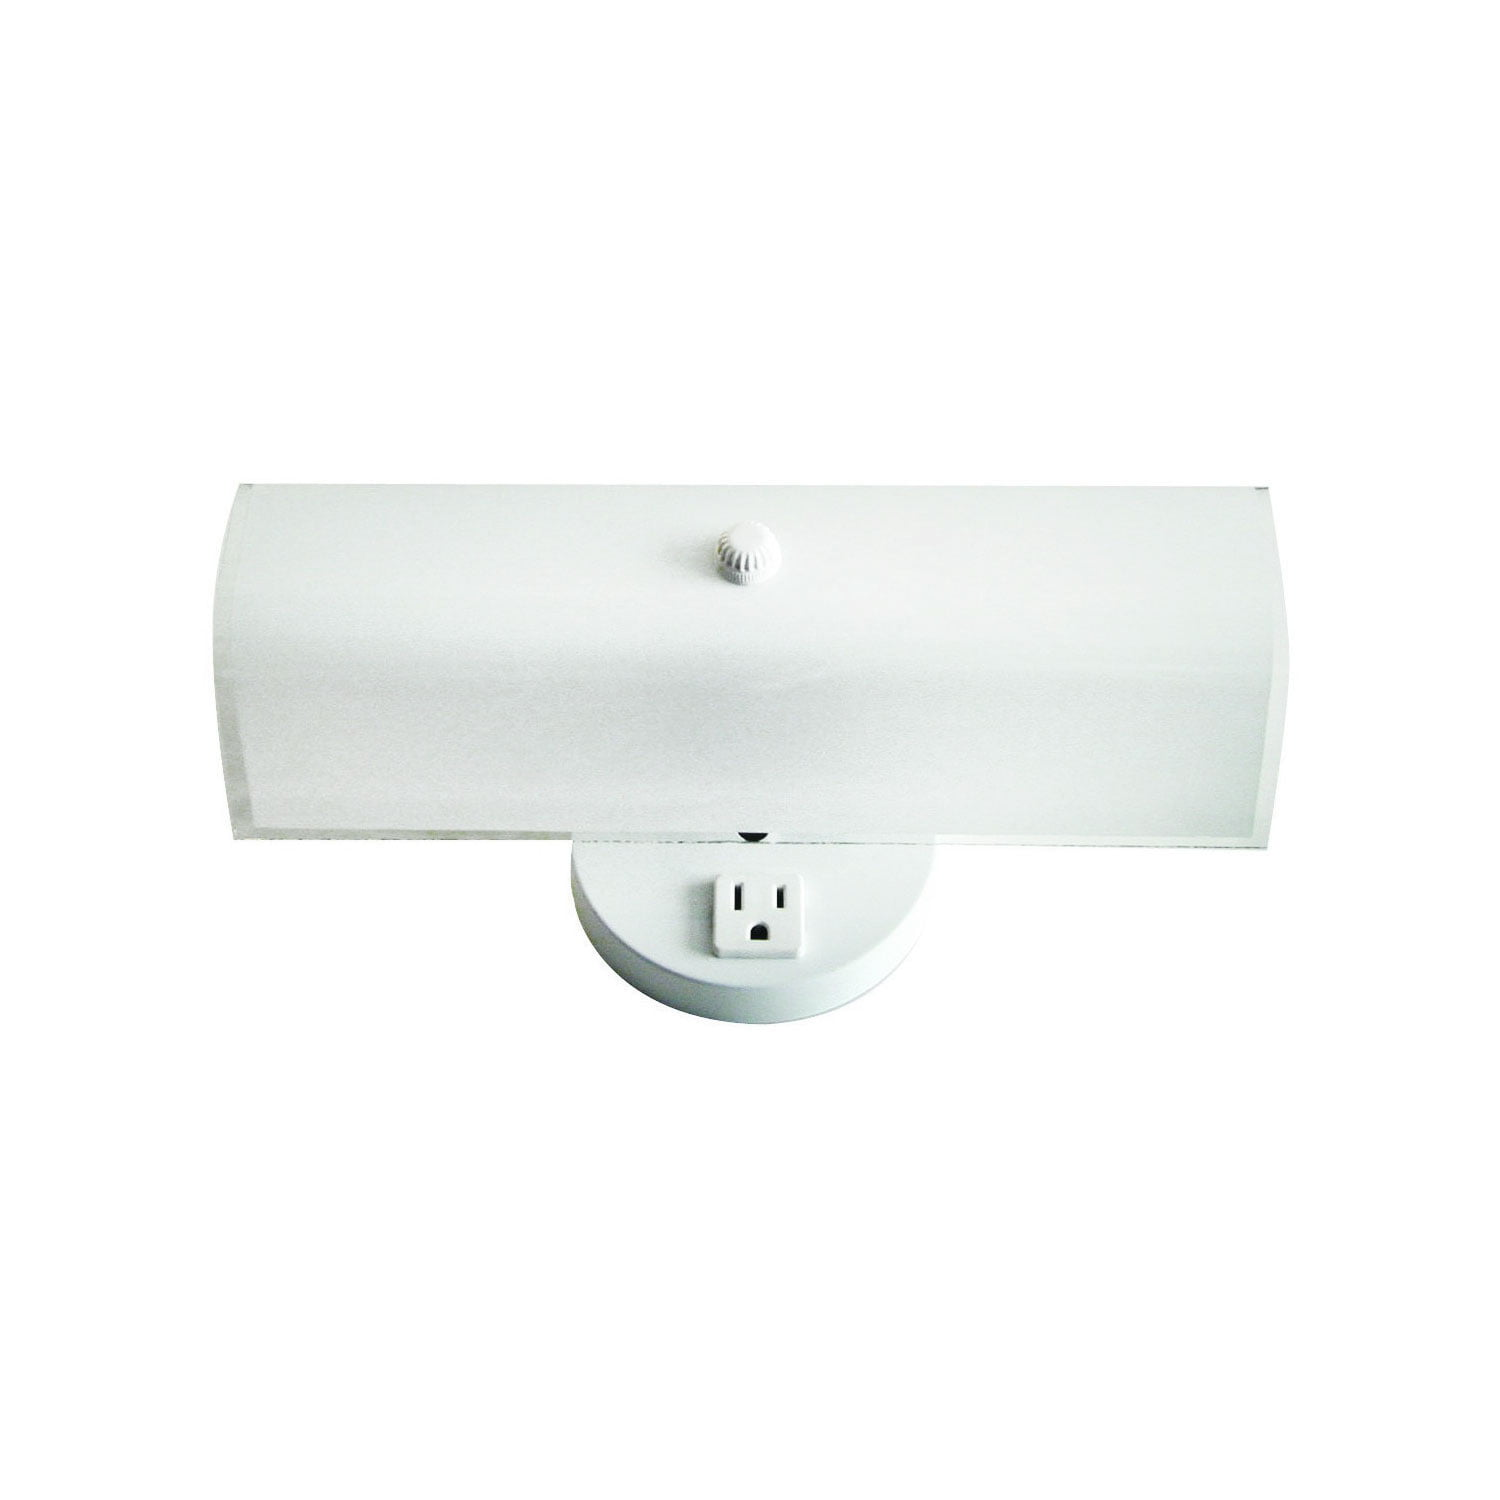 2 Bulb Bath Vanity Light Fixture Wall Mount With Plug In Receptacle White Walmart Com Walmart Com